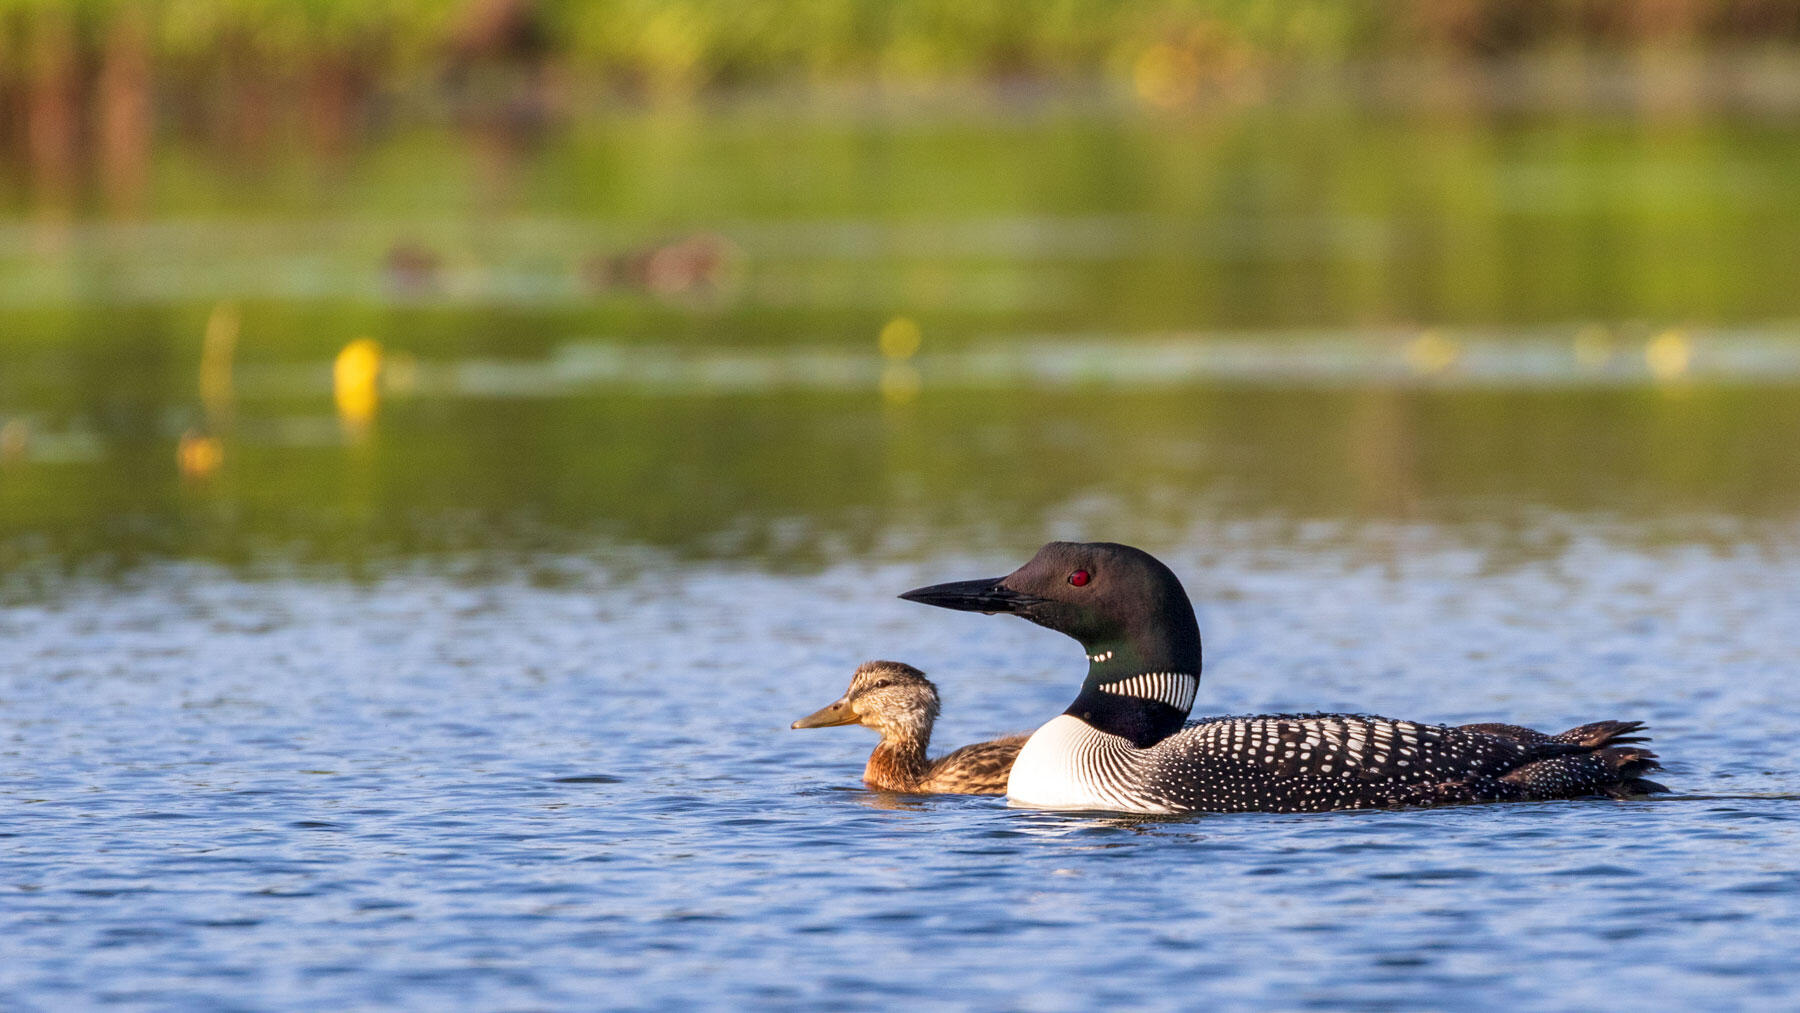 A Common Loon and its mate have taken a lone Mallard duckling under their wing in Wisconsin. Scientists tracking the non-traditional family have uncovered some novel behaviors during the young bird's development. Linda Grenzer